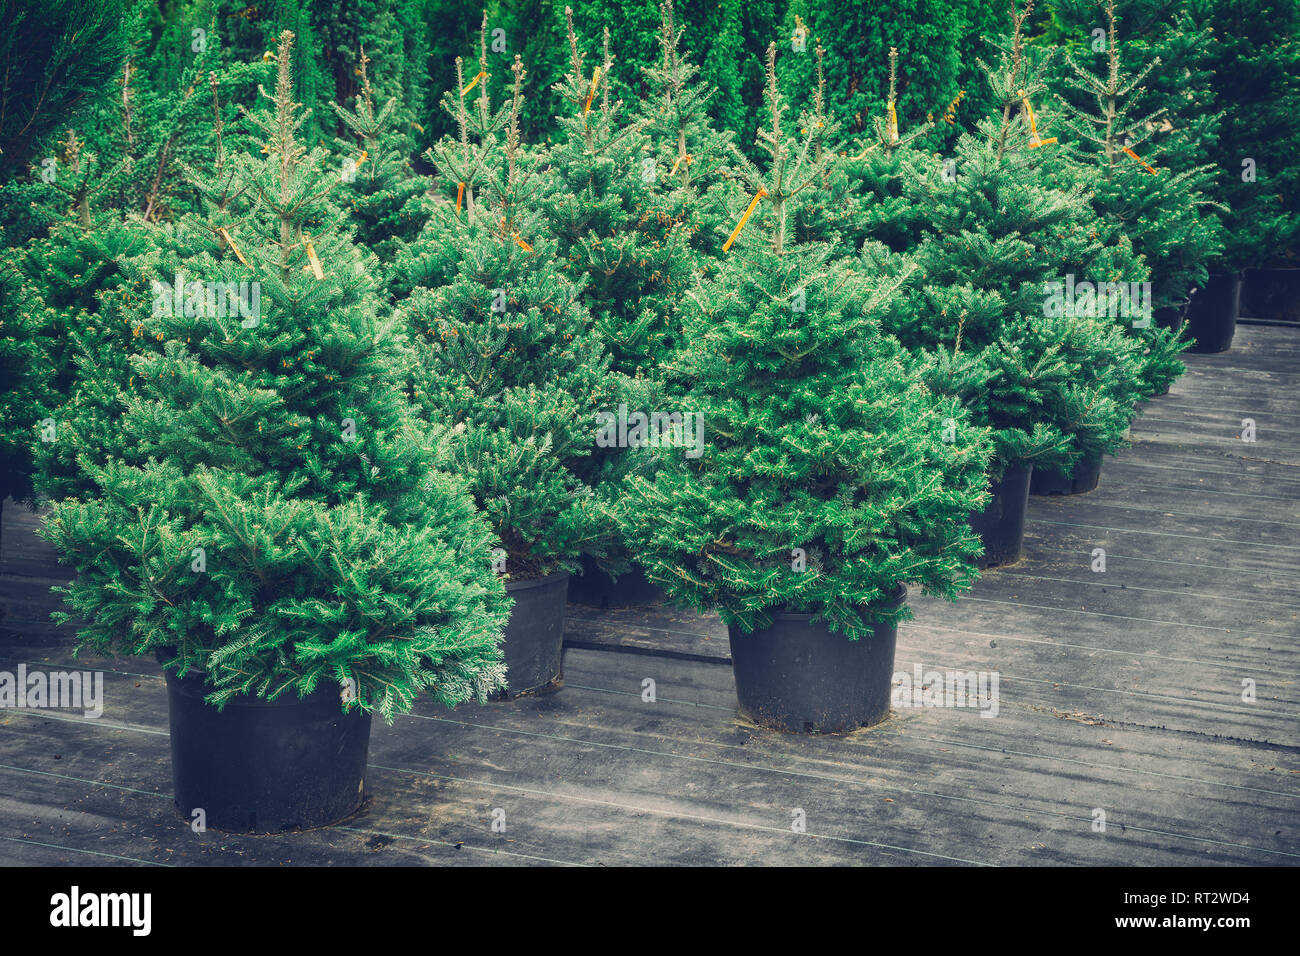 Christmas trees in pots for sale. Retro toned photo. - Stock Image